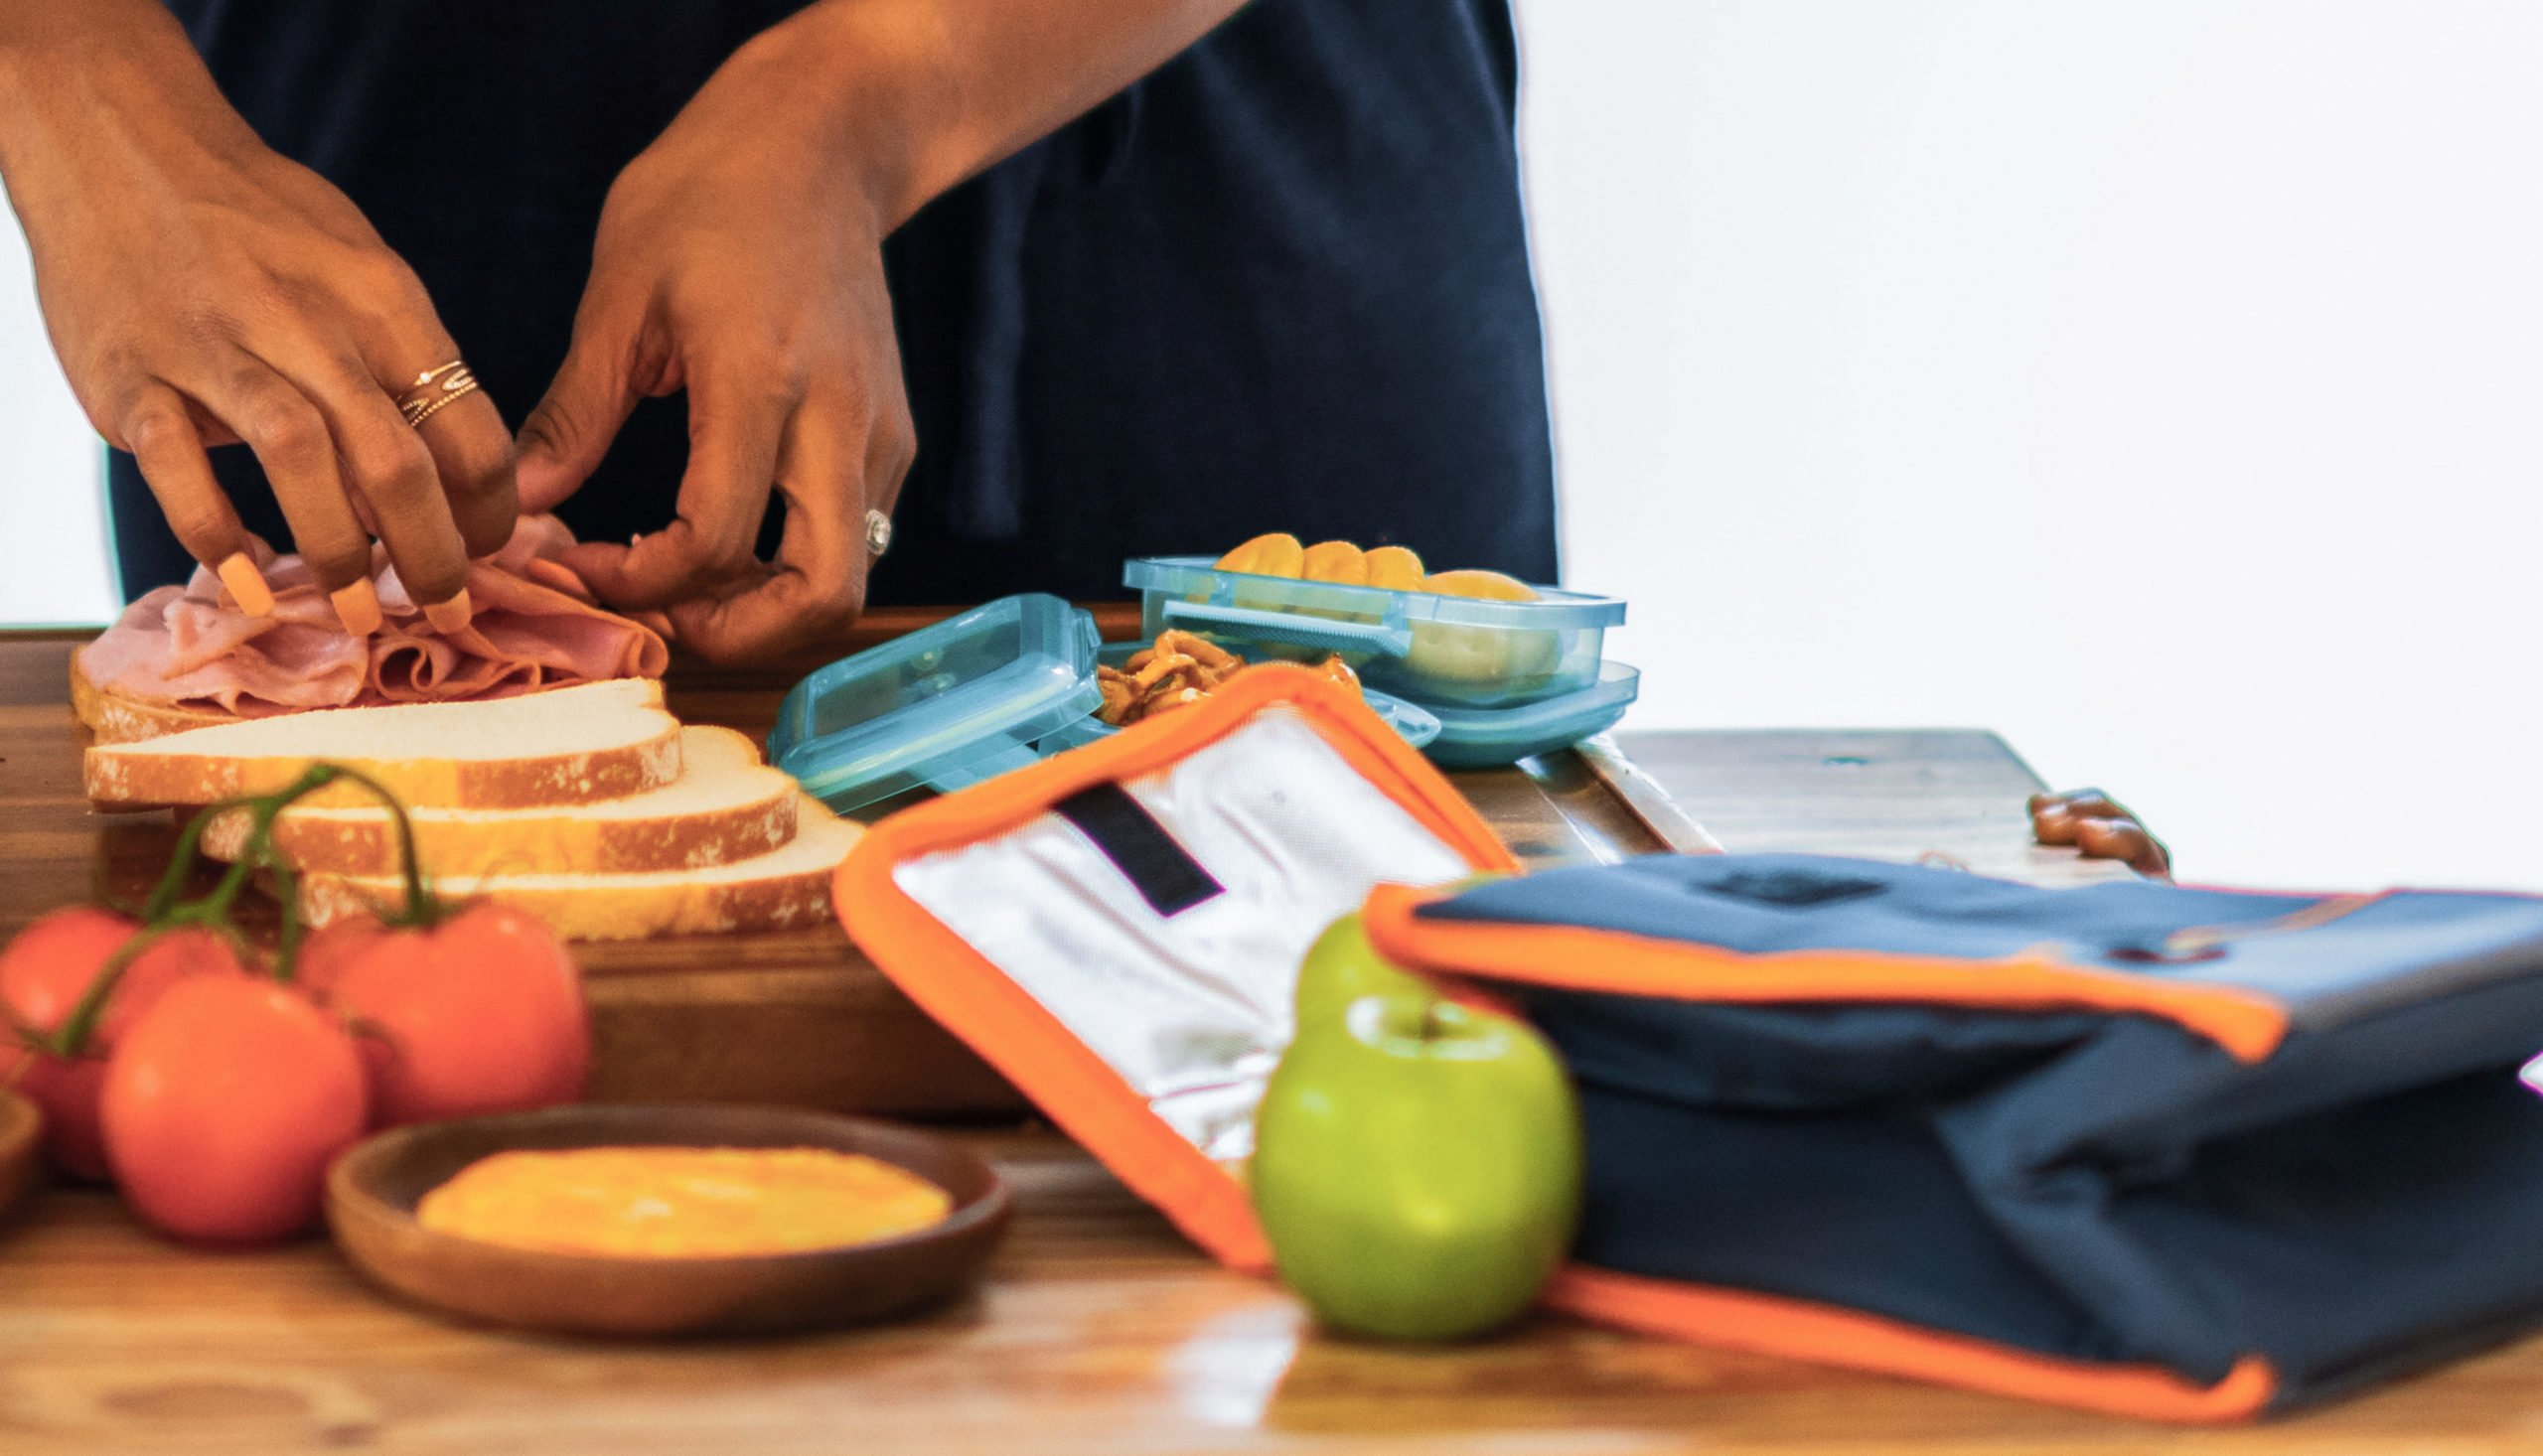 photo shows woman packing children's lunches